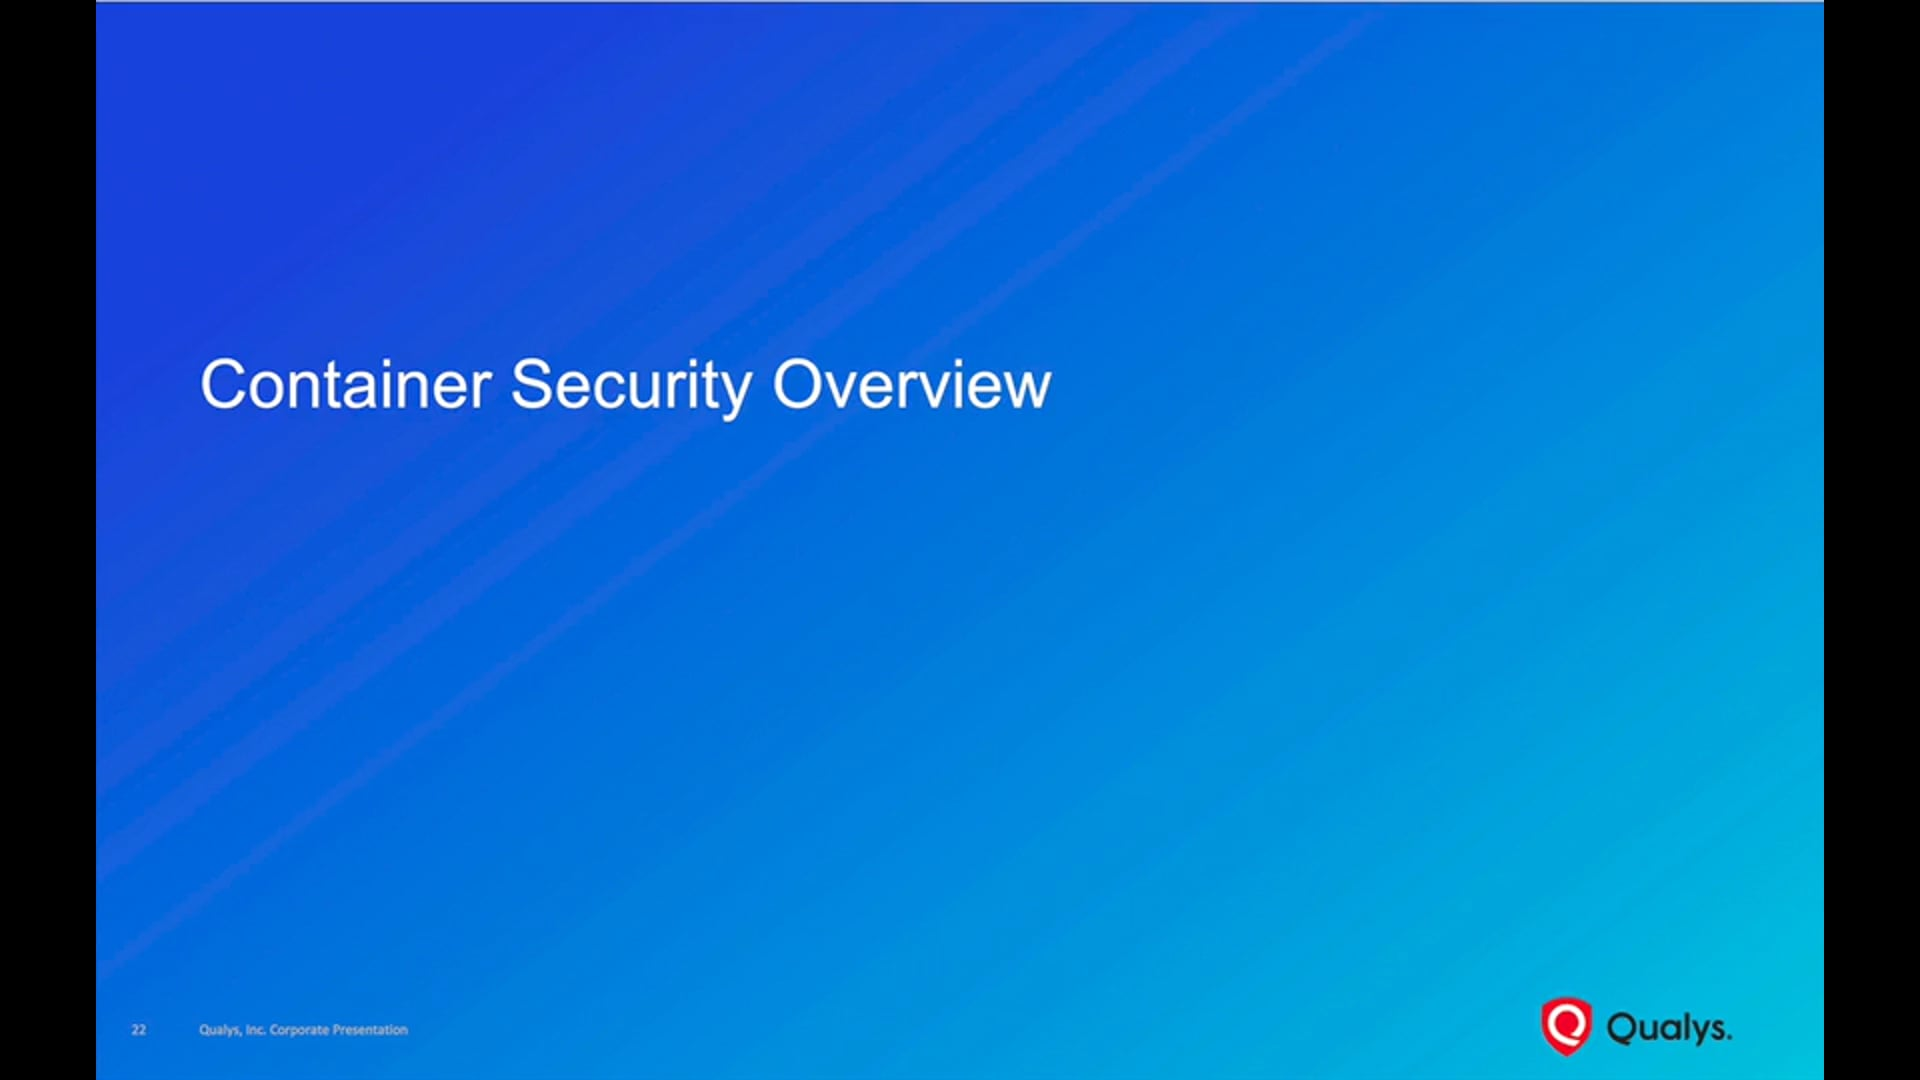 Container Security Overview